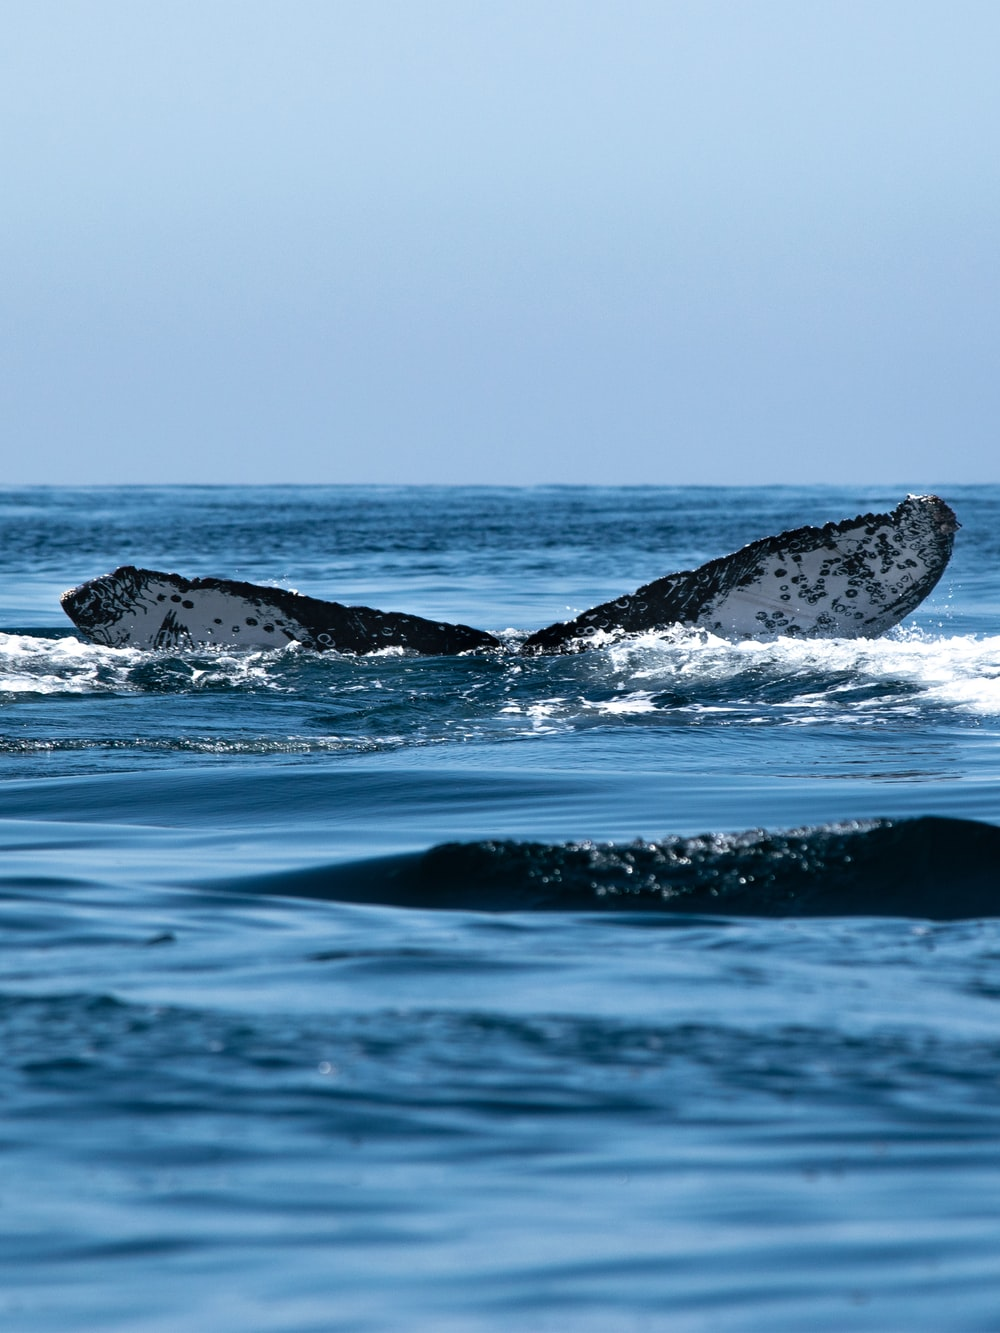 black and white whale on blue sea during daytime